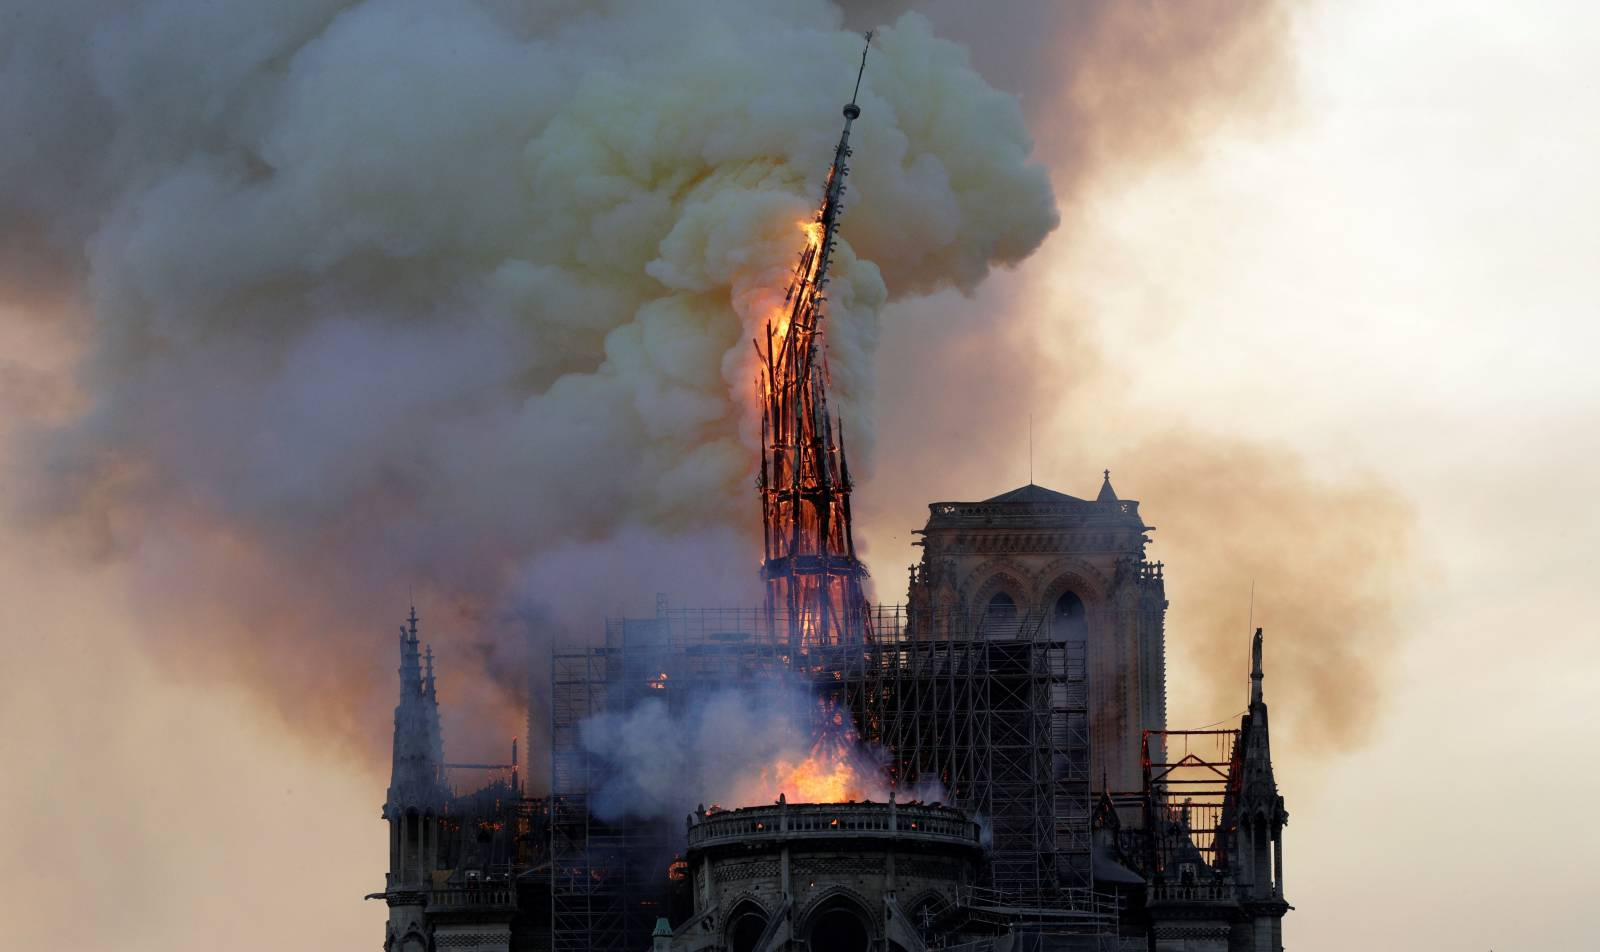 Apple Doneaza Reconstructia Catedralei Notre Dame